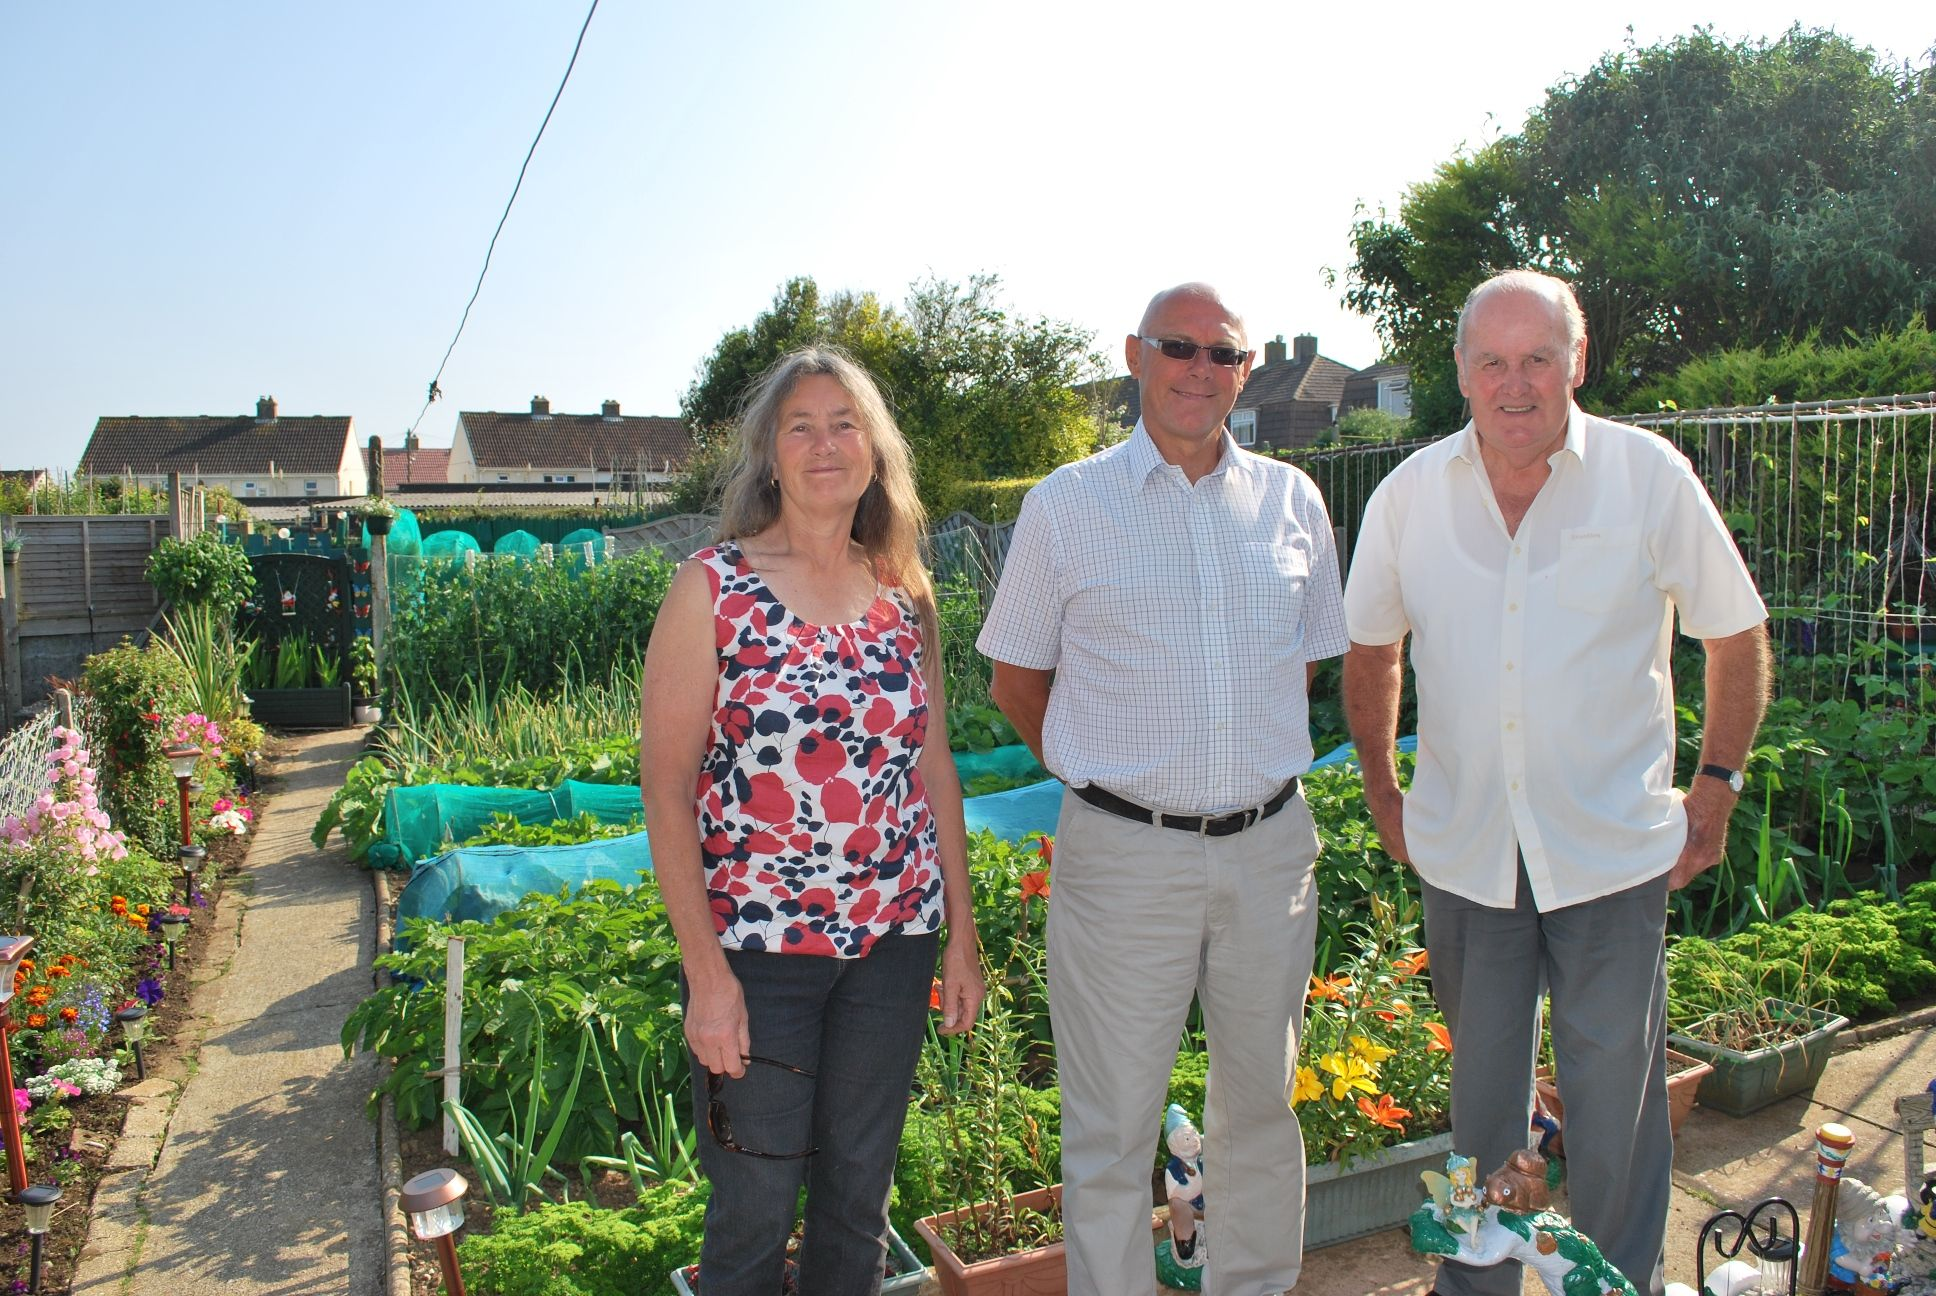 – Donald Tippett of Camborne wowed the judges with his impressive vegetable garden.